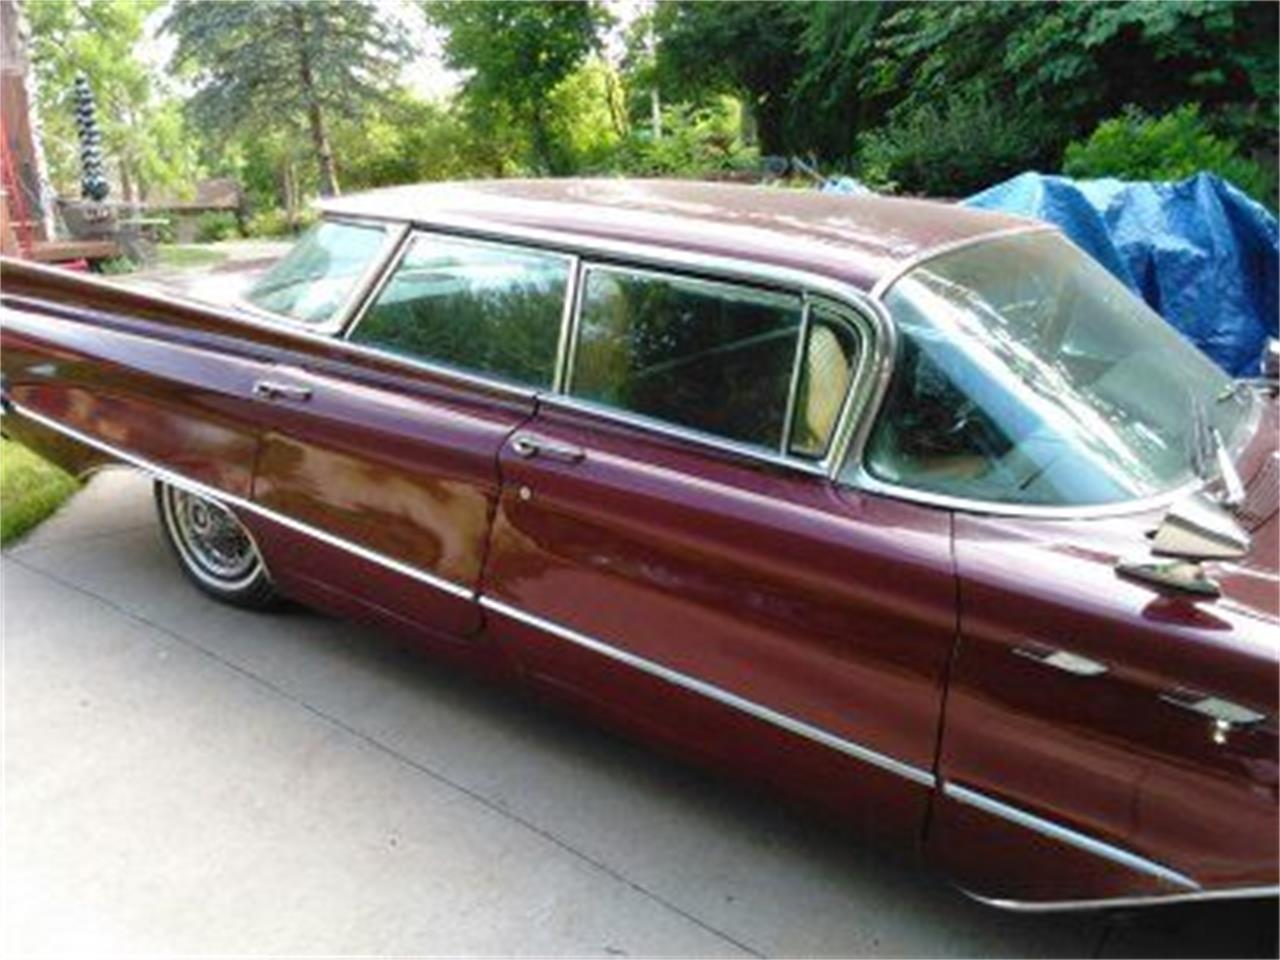 1960 Buick Electra 225 for sale in Cadillac, MI – photo 2